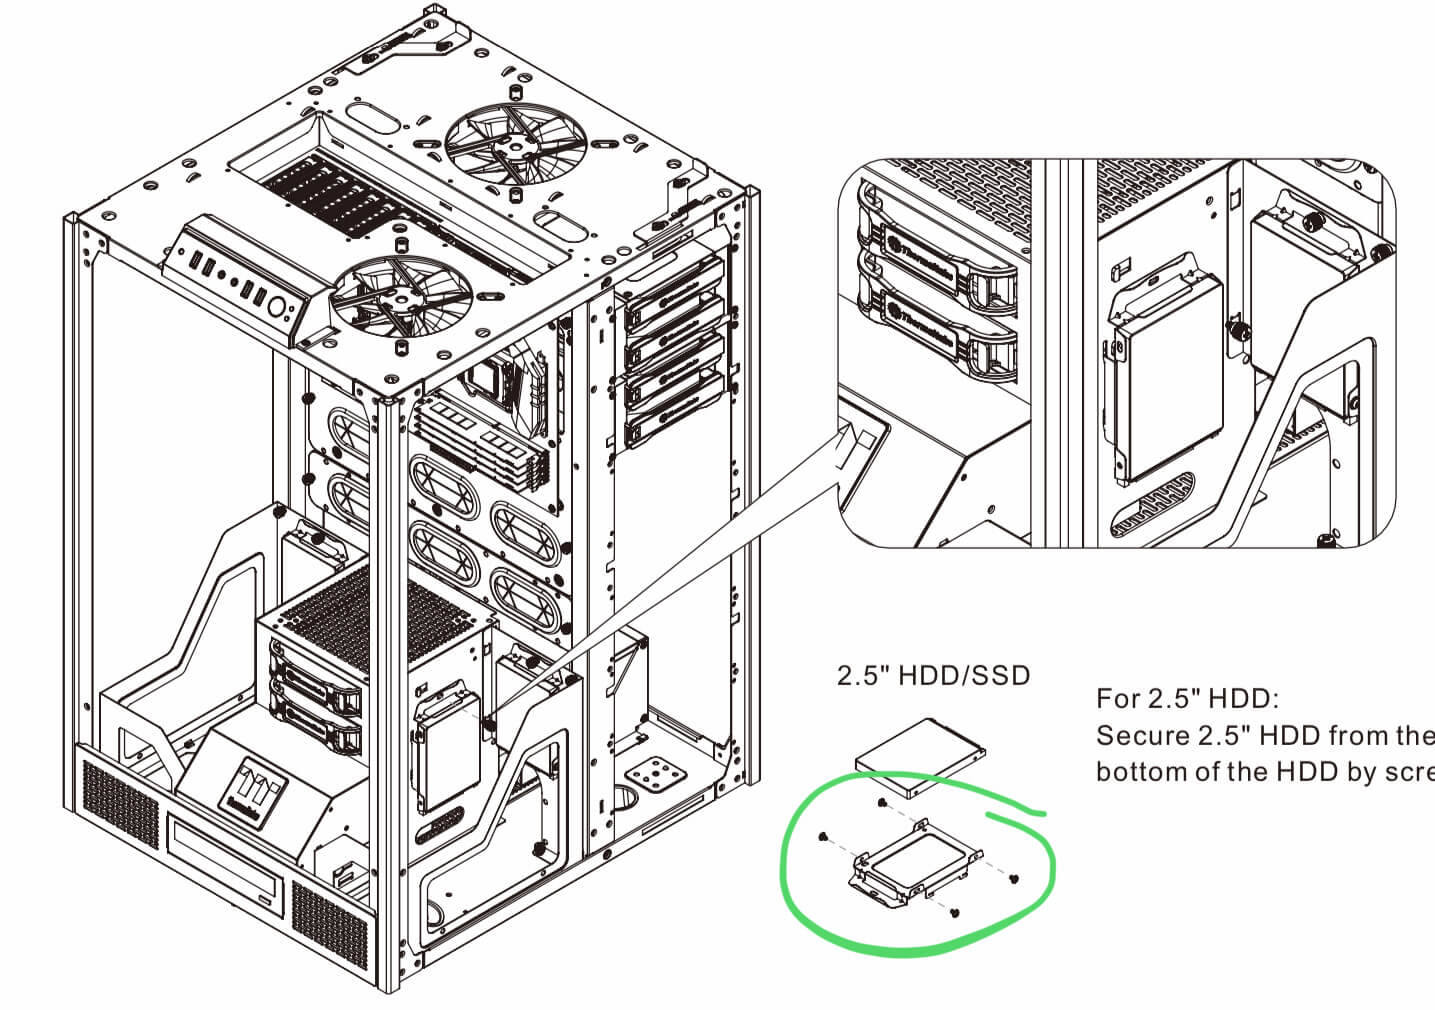 Searching for additional HDD Cages/SSD mounting brackets